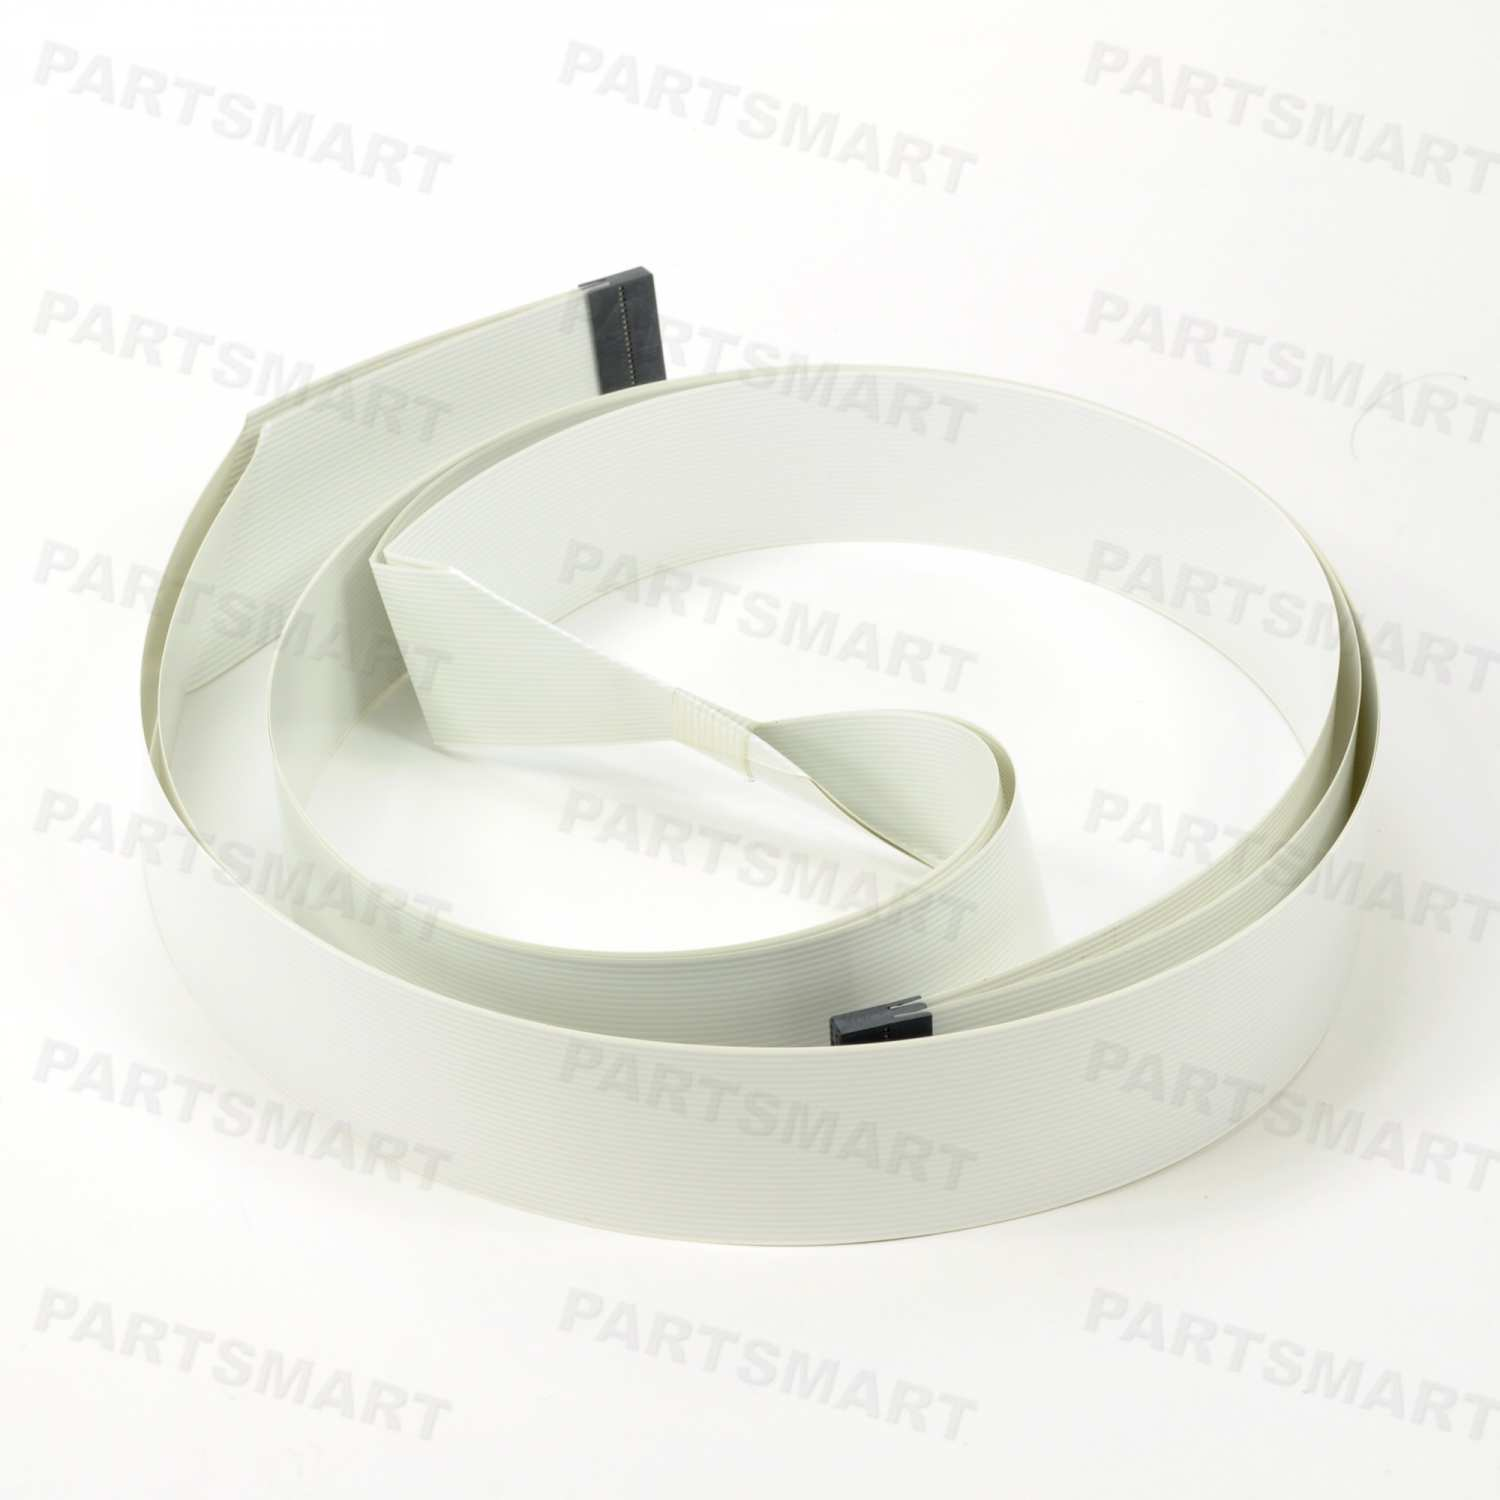 C4713-60181  Trailing Cable (24